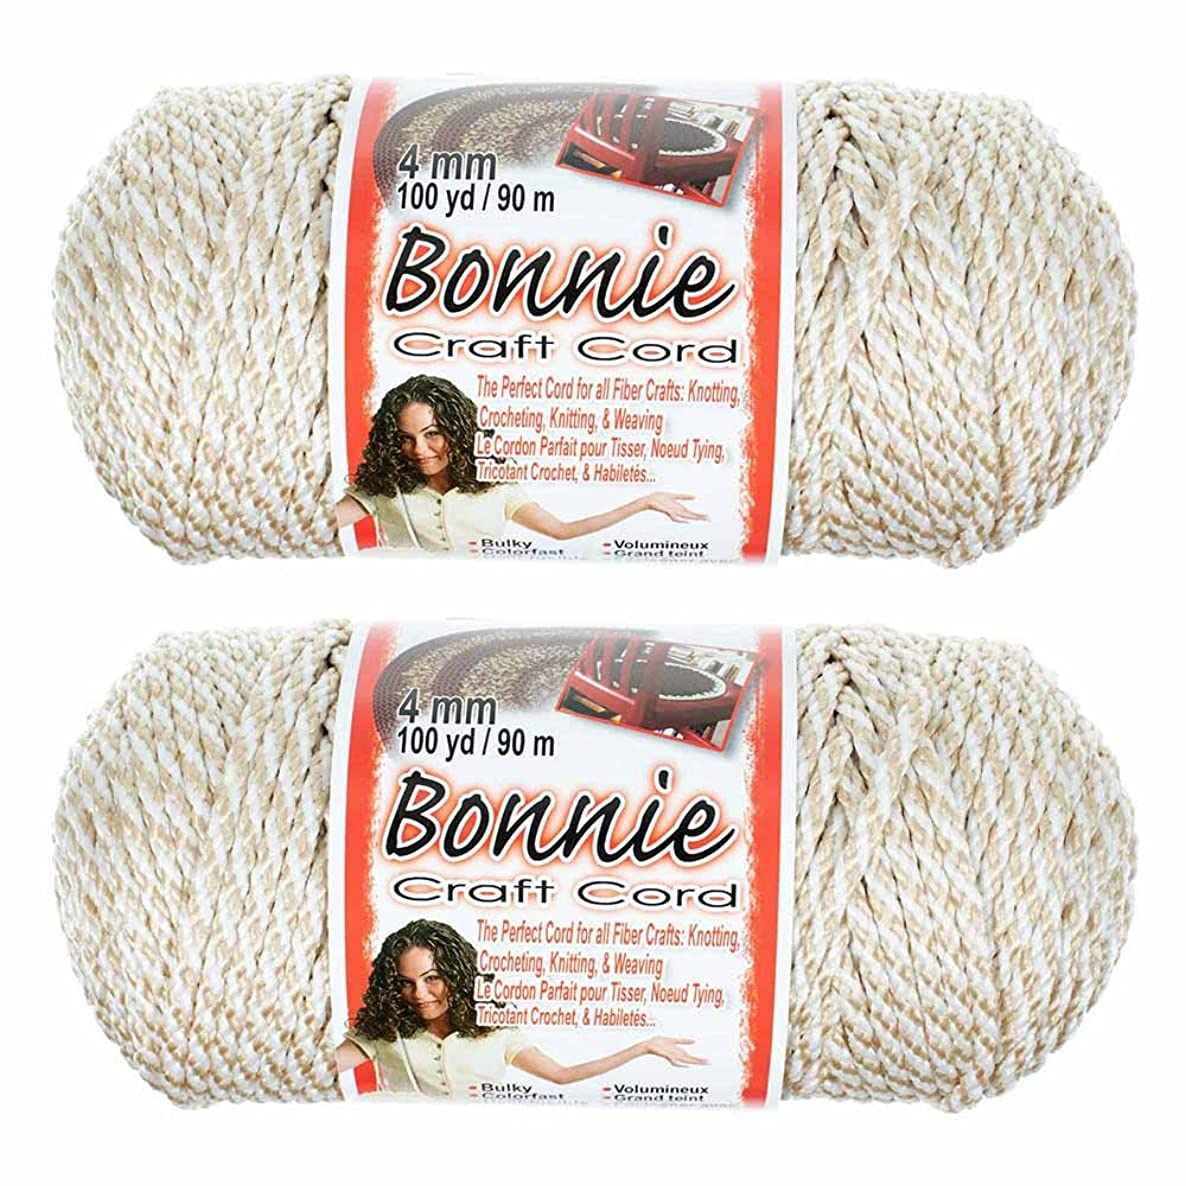 4mm Bonnie Macramé Craft Cord 2 Pack 100-Yard in Various Colors